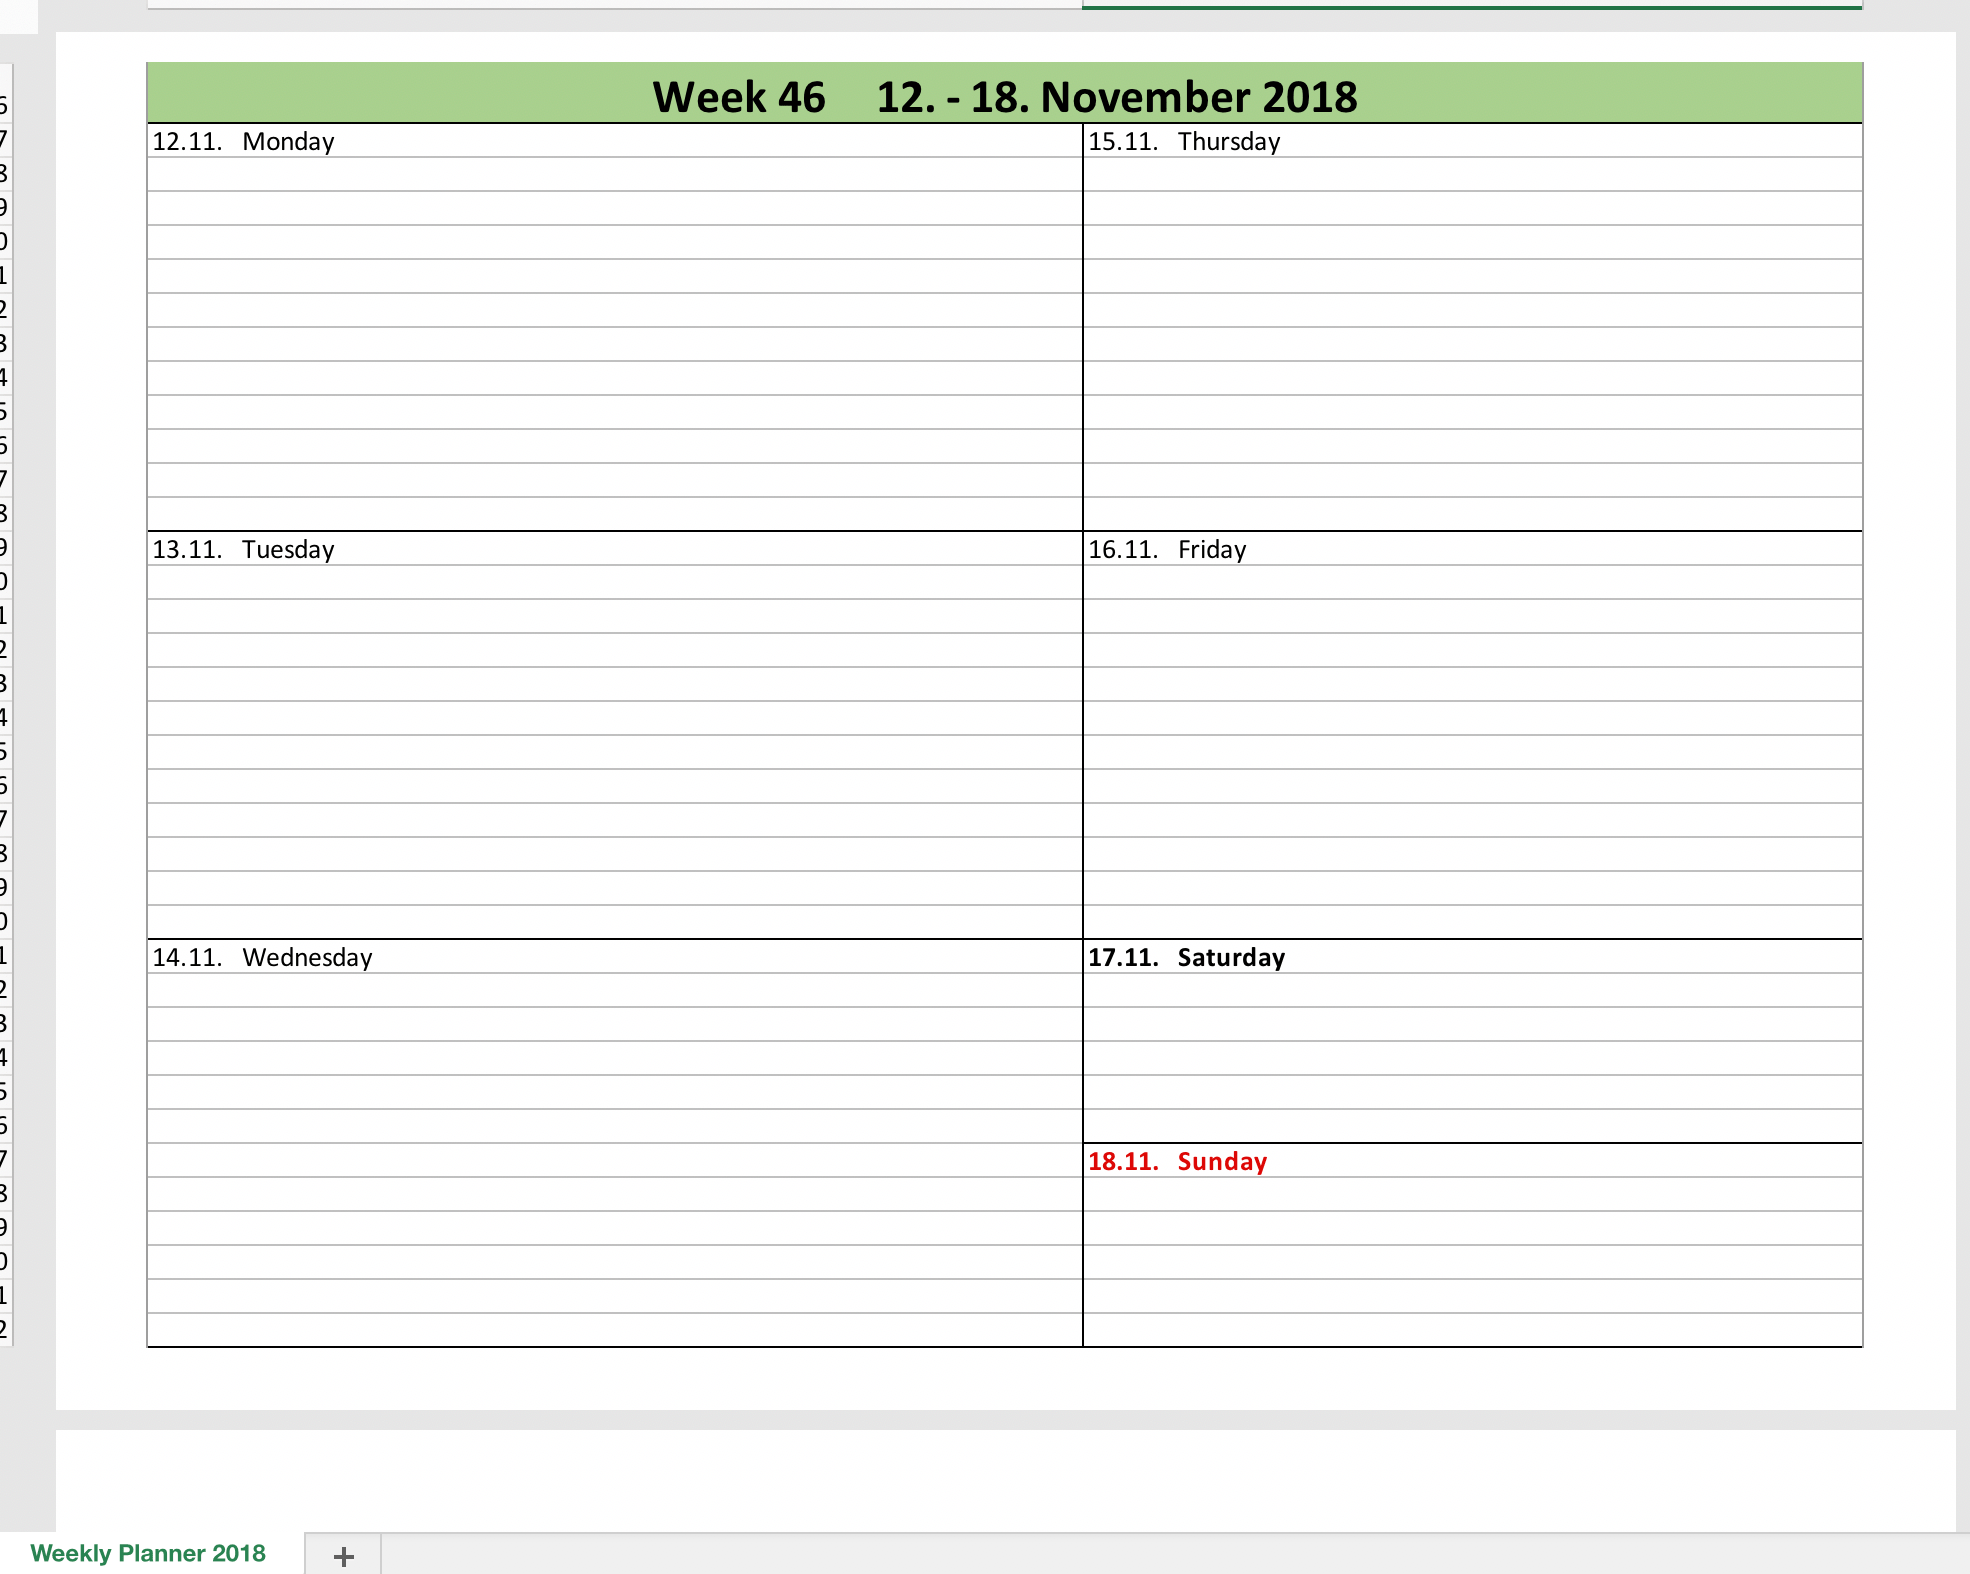 week by week planner template - weekly calendar 2018 with excel excel templates for